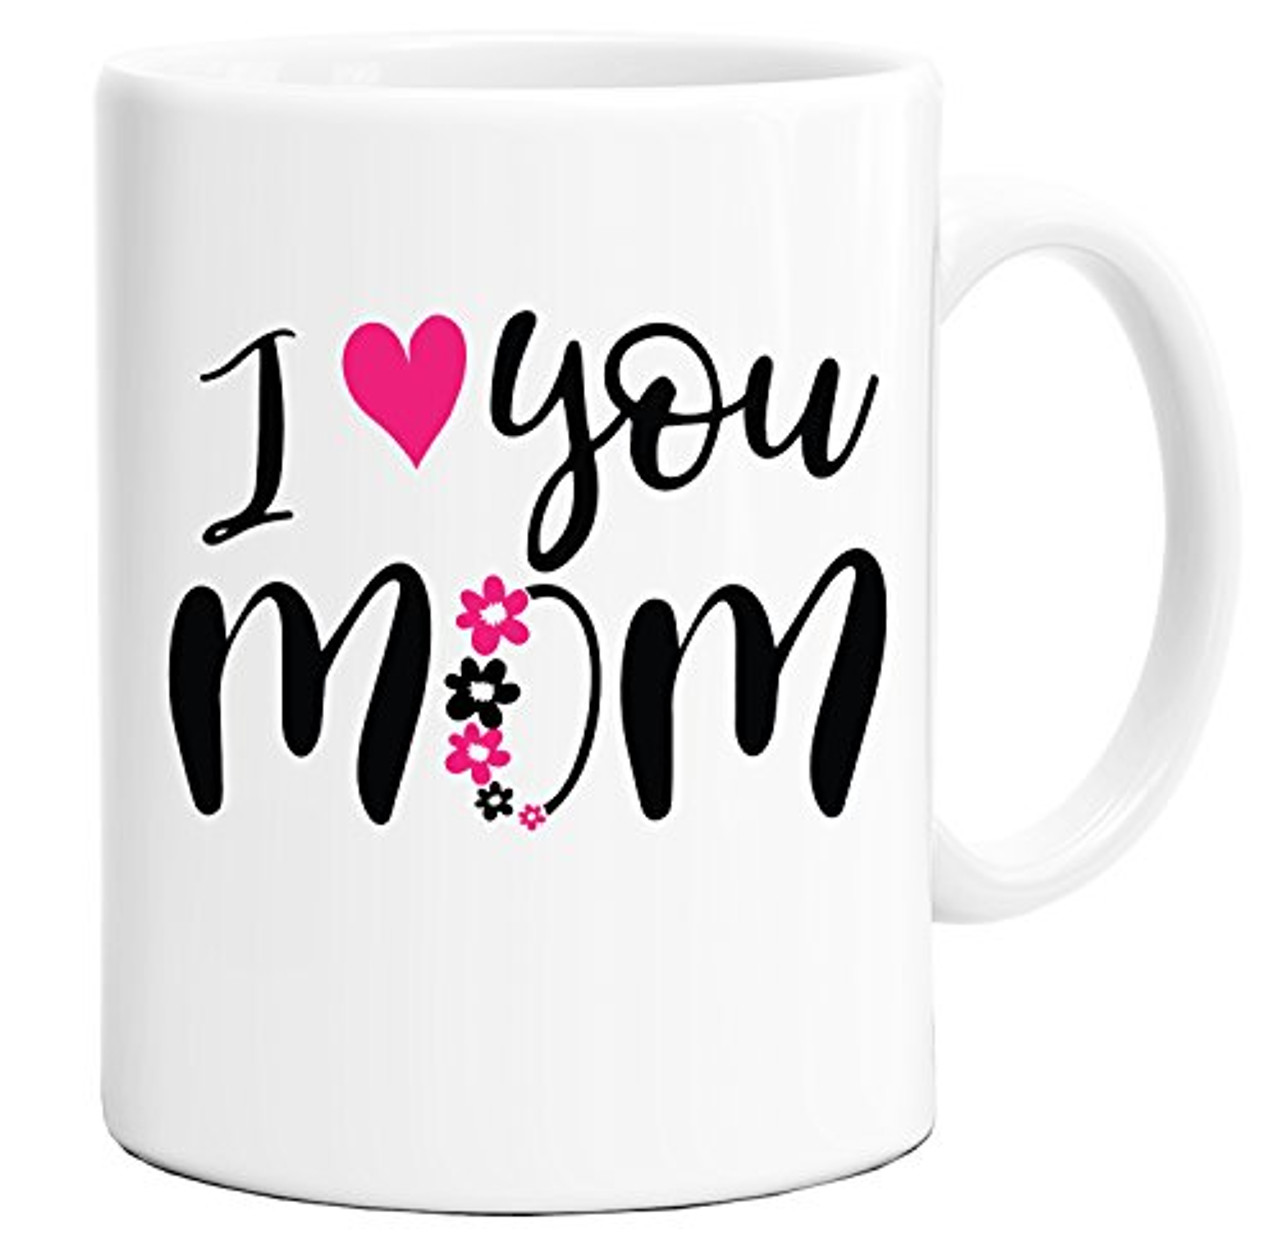 Mother S Day Mug I Love You Mom Mug Design For Moms Coffee Mug Gift Box Mug In Decorative Blue Ribbon Box 11 Oz Gifts For Moms Women Friends Both Sides Printed Toyboxtech